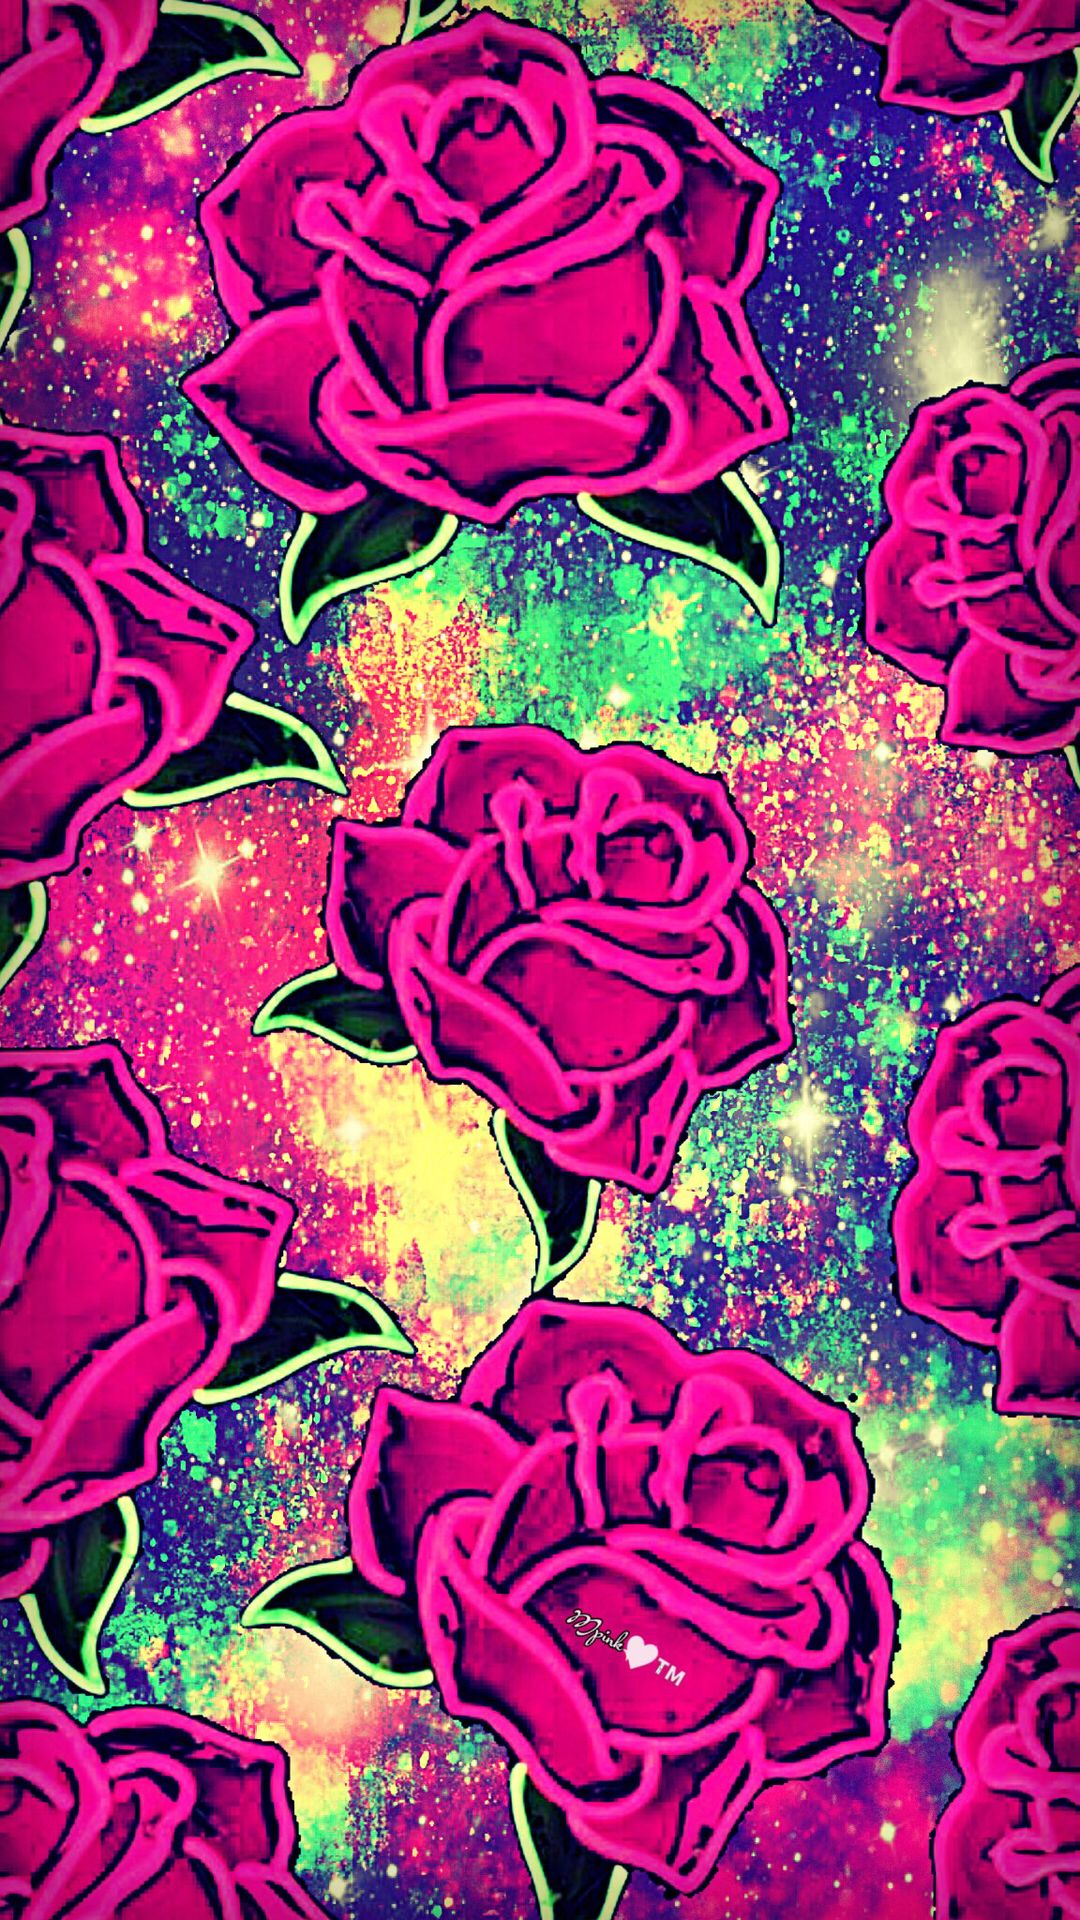 Vintage Rose Galaxy Wallpaper Androidwallpaper Iphonewallpaper